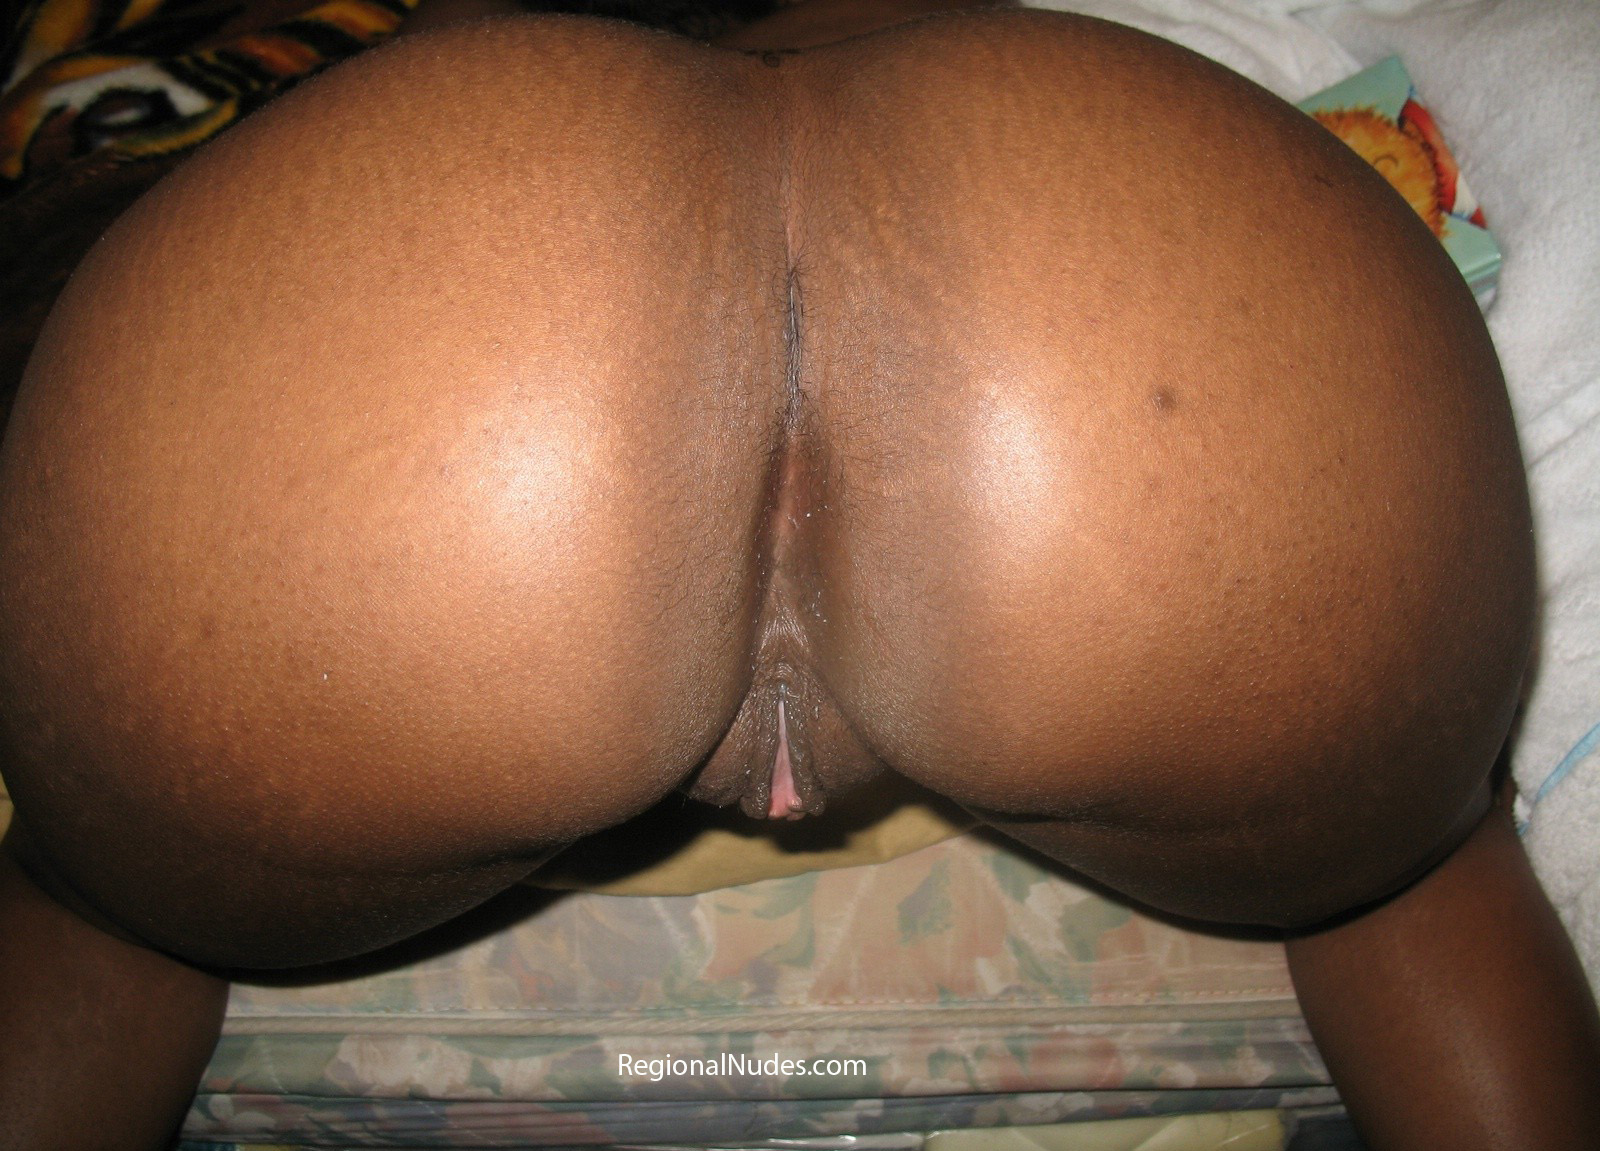 Best Jamaican Booty Bent Over Naked  Regional Nude Women -2499